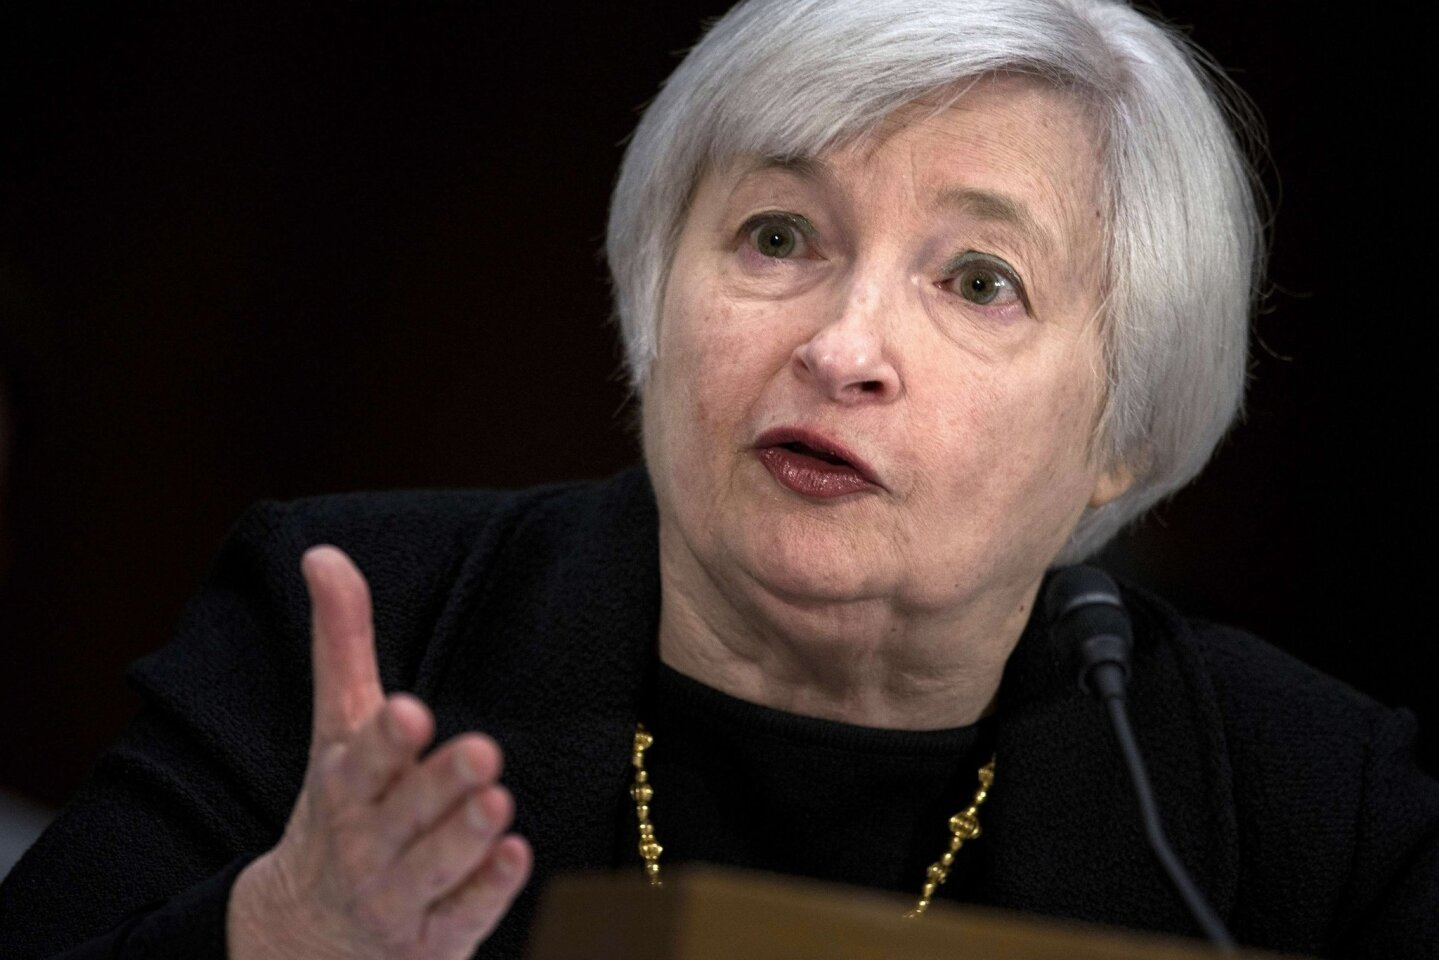 Janet L. Yellen takes over Feb. 1 as the first woman to chair the Federal Reserve as it tries to pull back a key stimulus program without derailing the recovery. Yellen, 67, a former UC Berkeley economist, has been the Fed's vice chair since 2010, serving as a close ally of outgoing chair Ben S. Bernanke in the central bank's unprecedented efforts to boost the economy after the Great Recession.